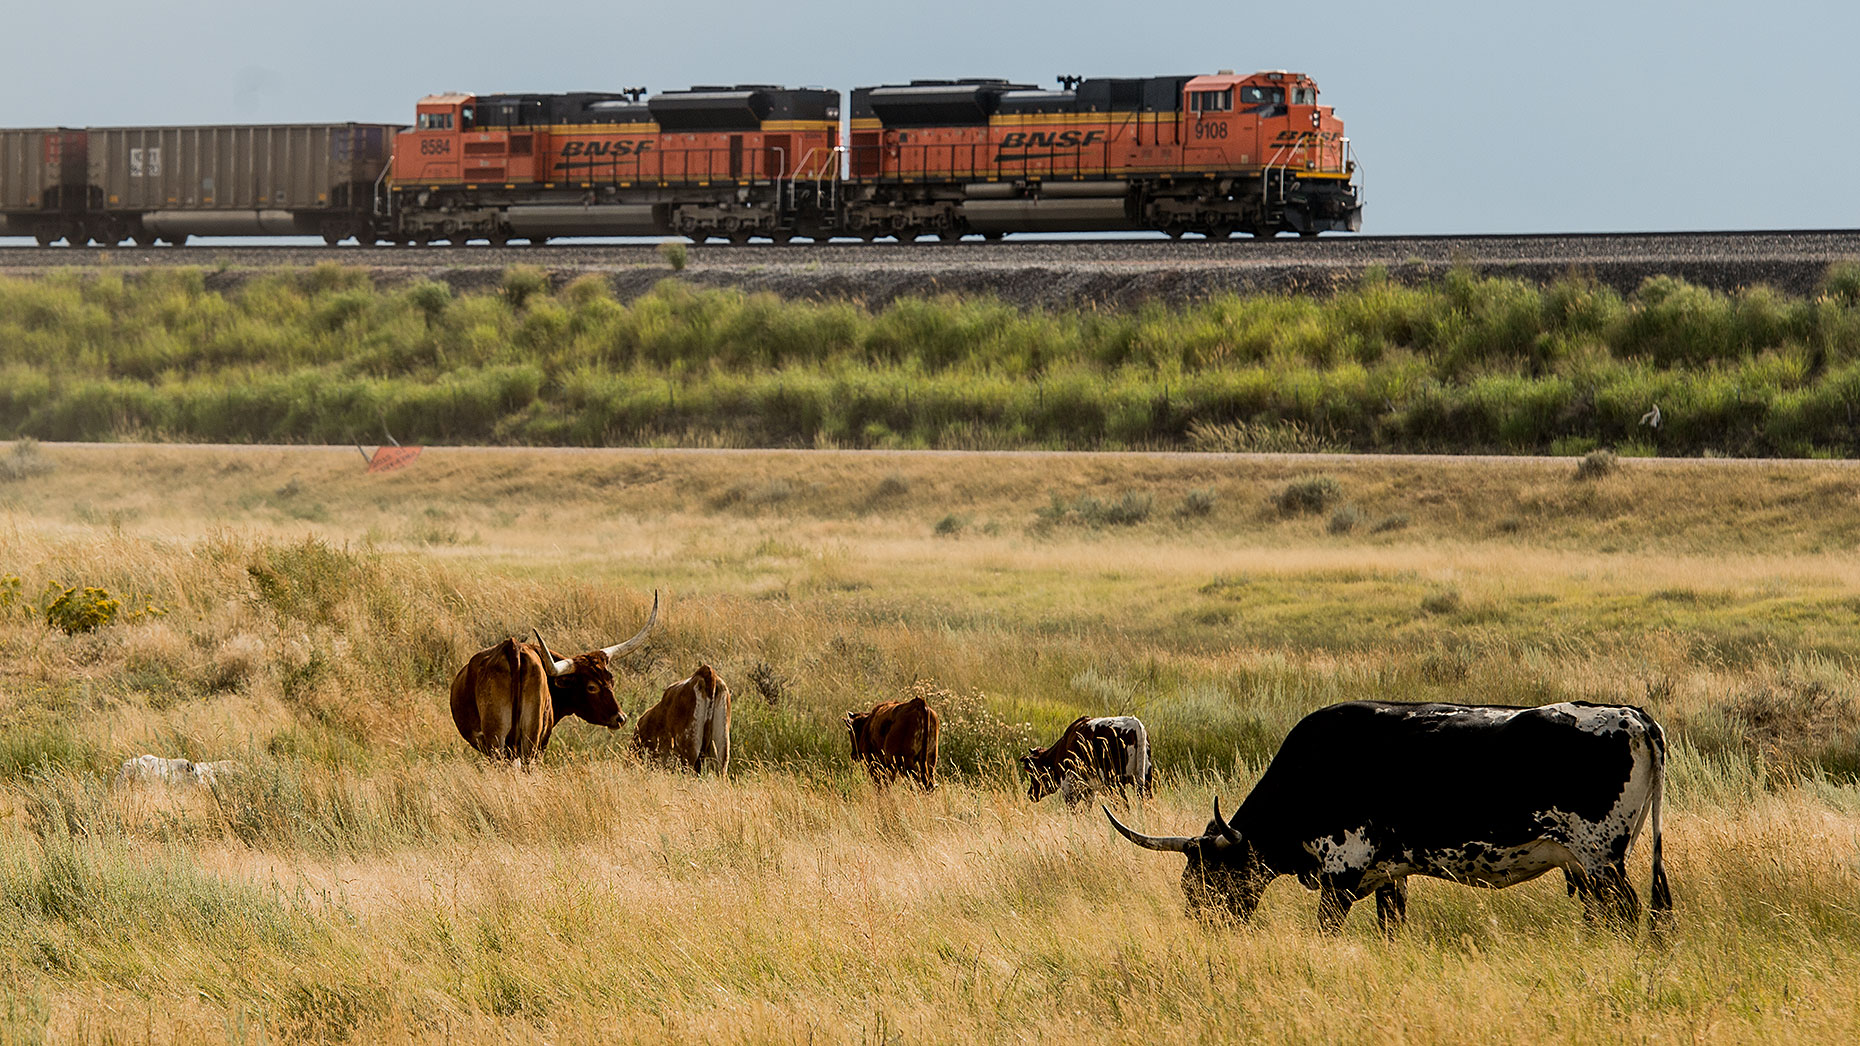 Railroad and Cattle Herd